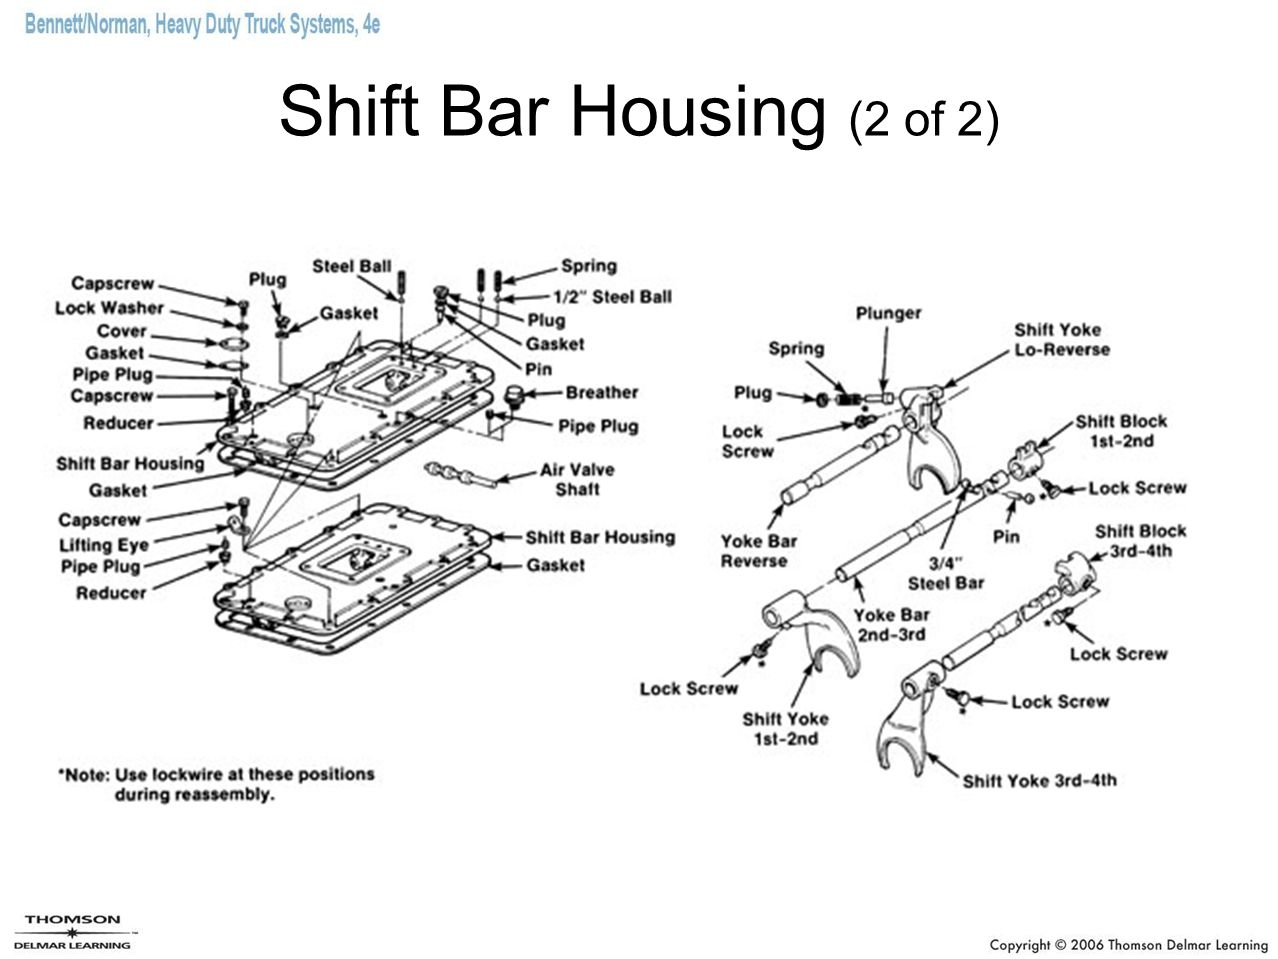 Shift Bar Housing (2 of 2) SHIFT BAR HOUSING